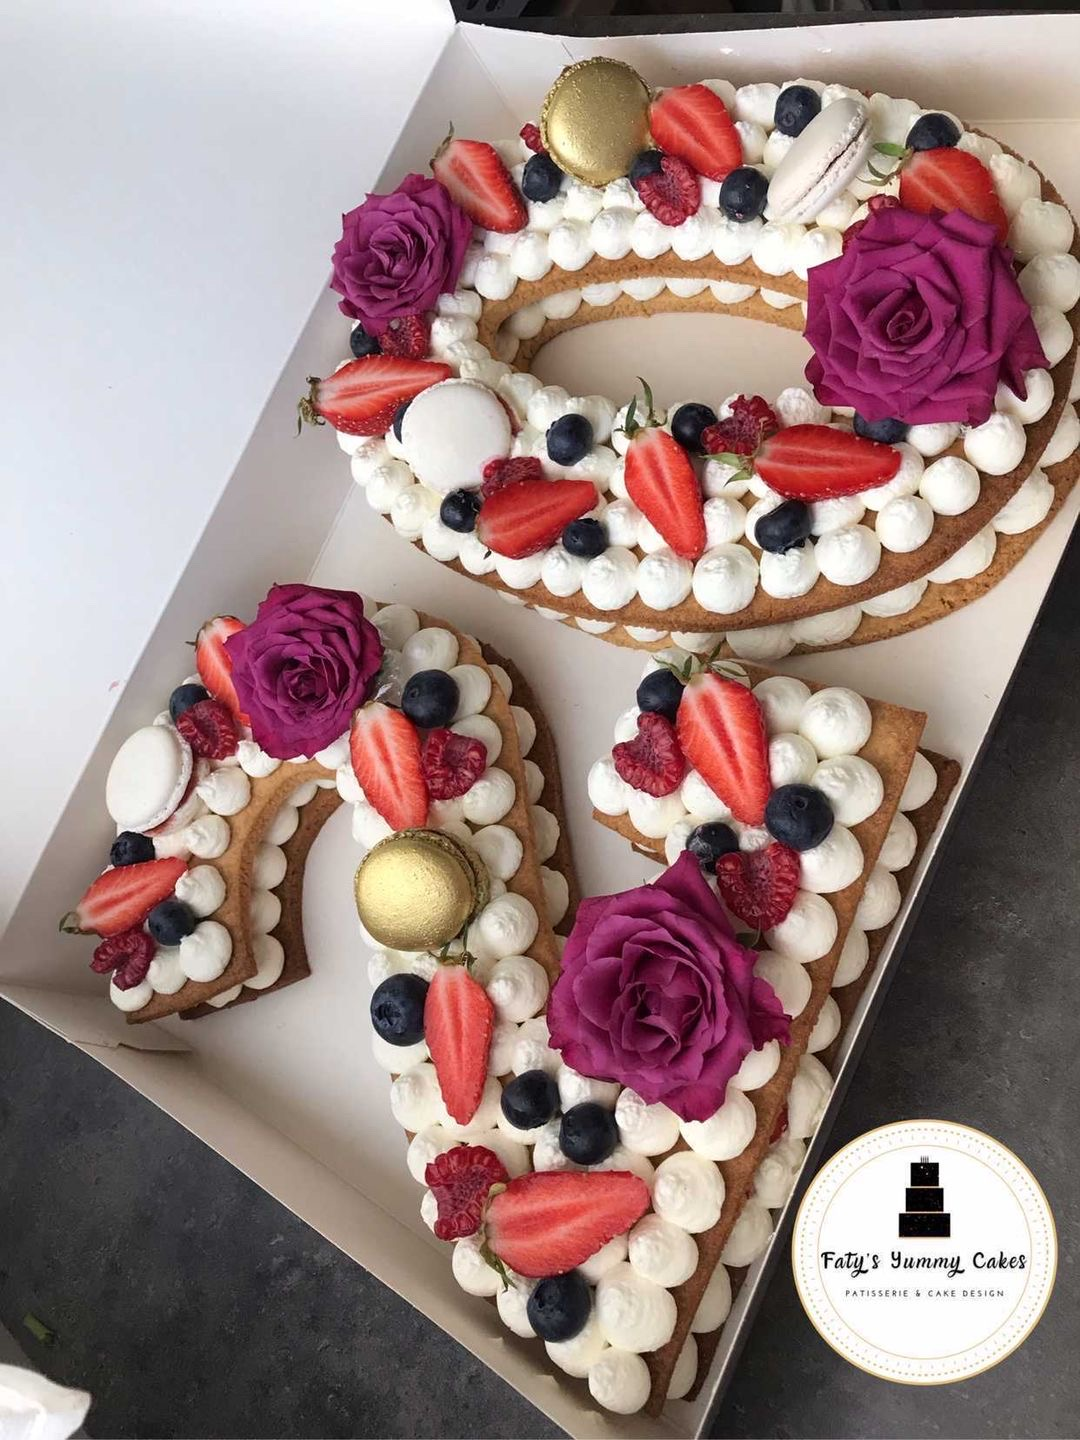 Atelier Number Cakes by Faty's Yummy Cakes